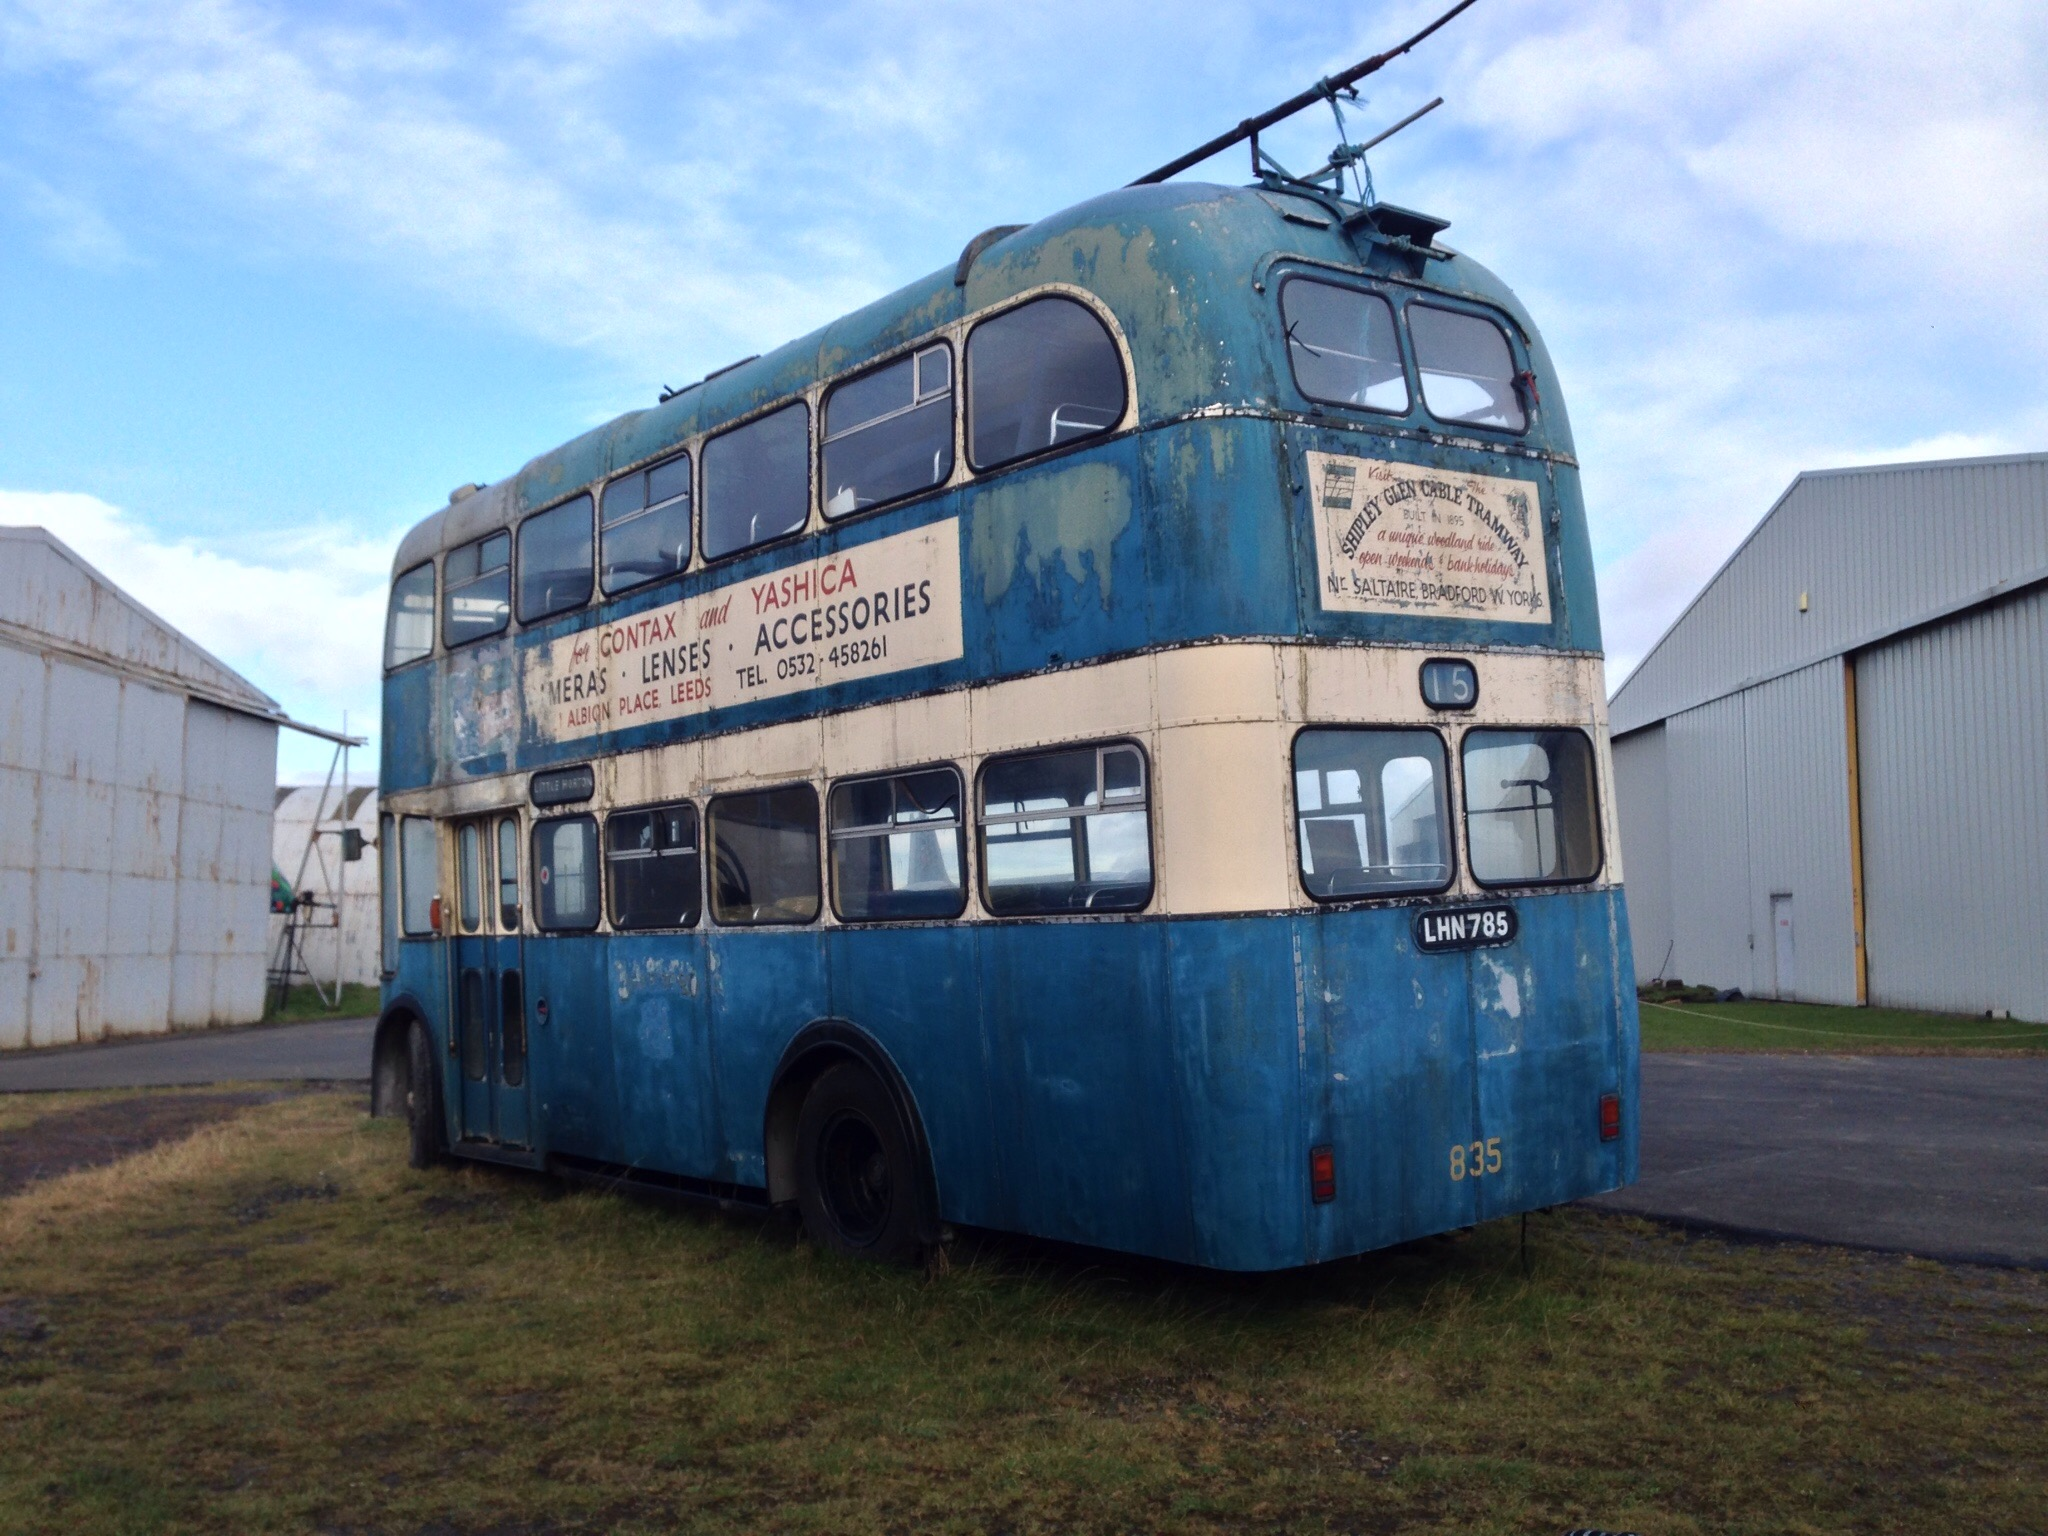 old blue bus at sunderland air museum days out with a toddler in north east england